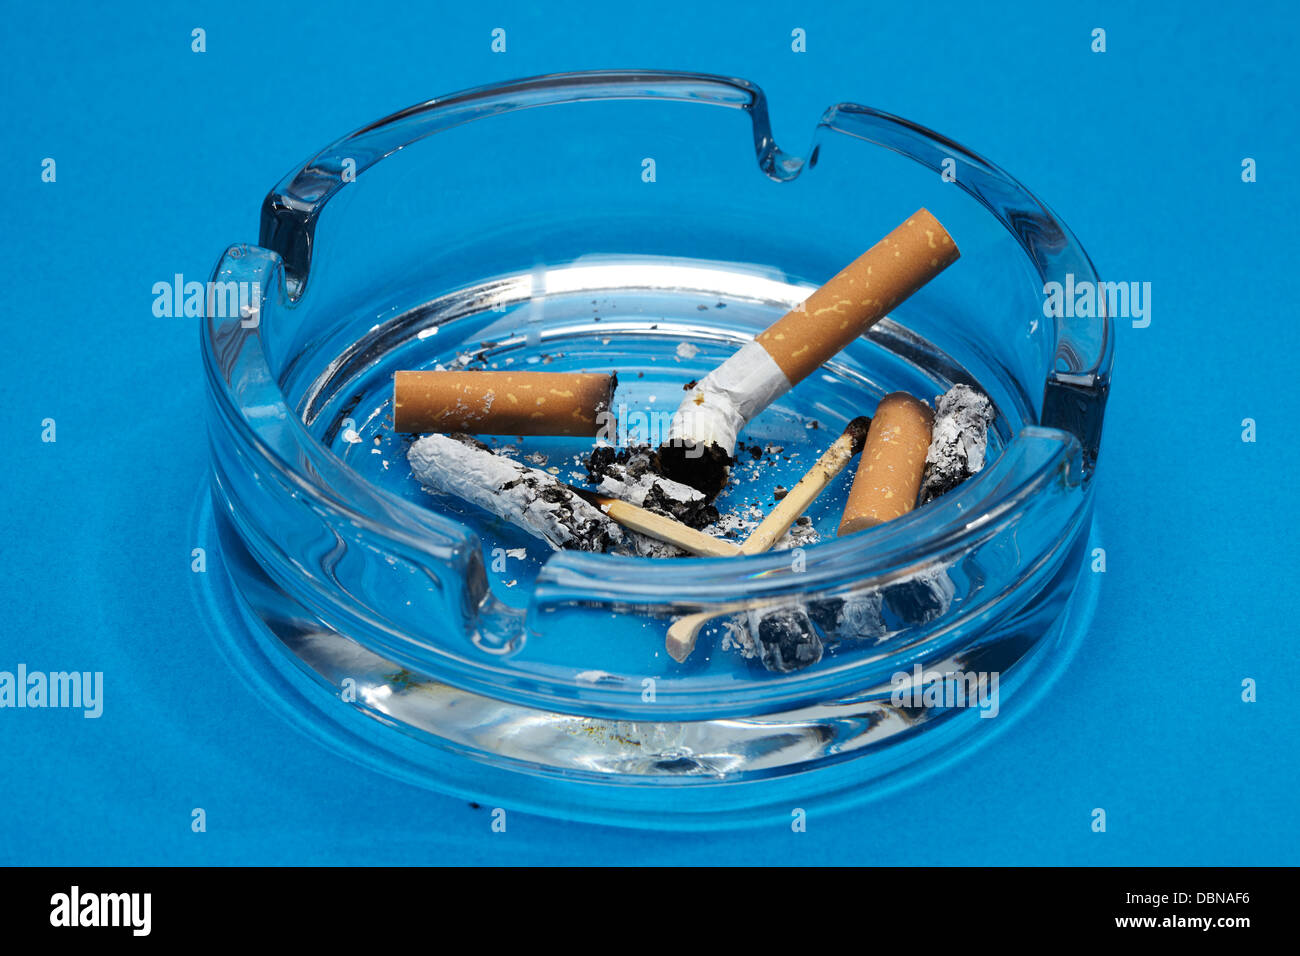 ashtray cigarettes stockfotos ashtray cigarettes bilder. Black Bedroom Furniture Sets. Home Design Ideas